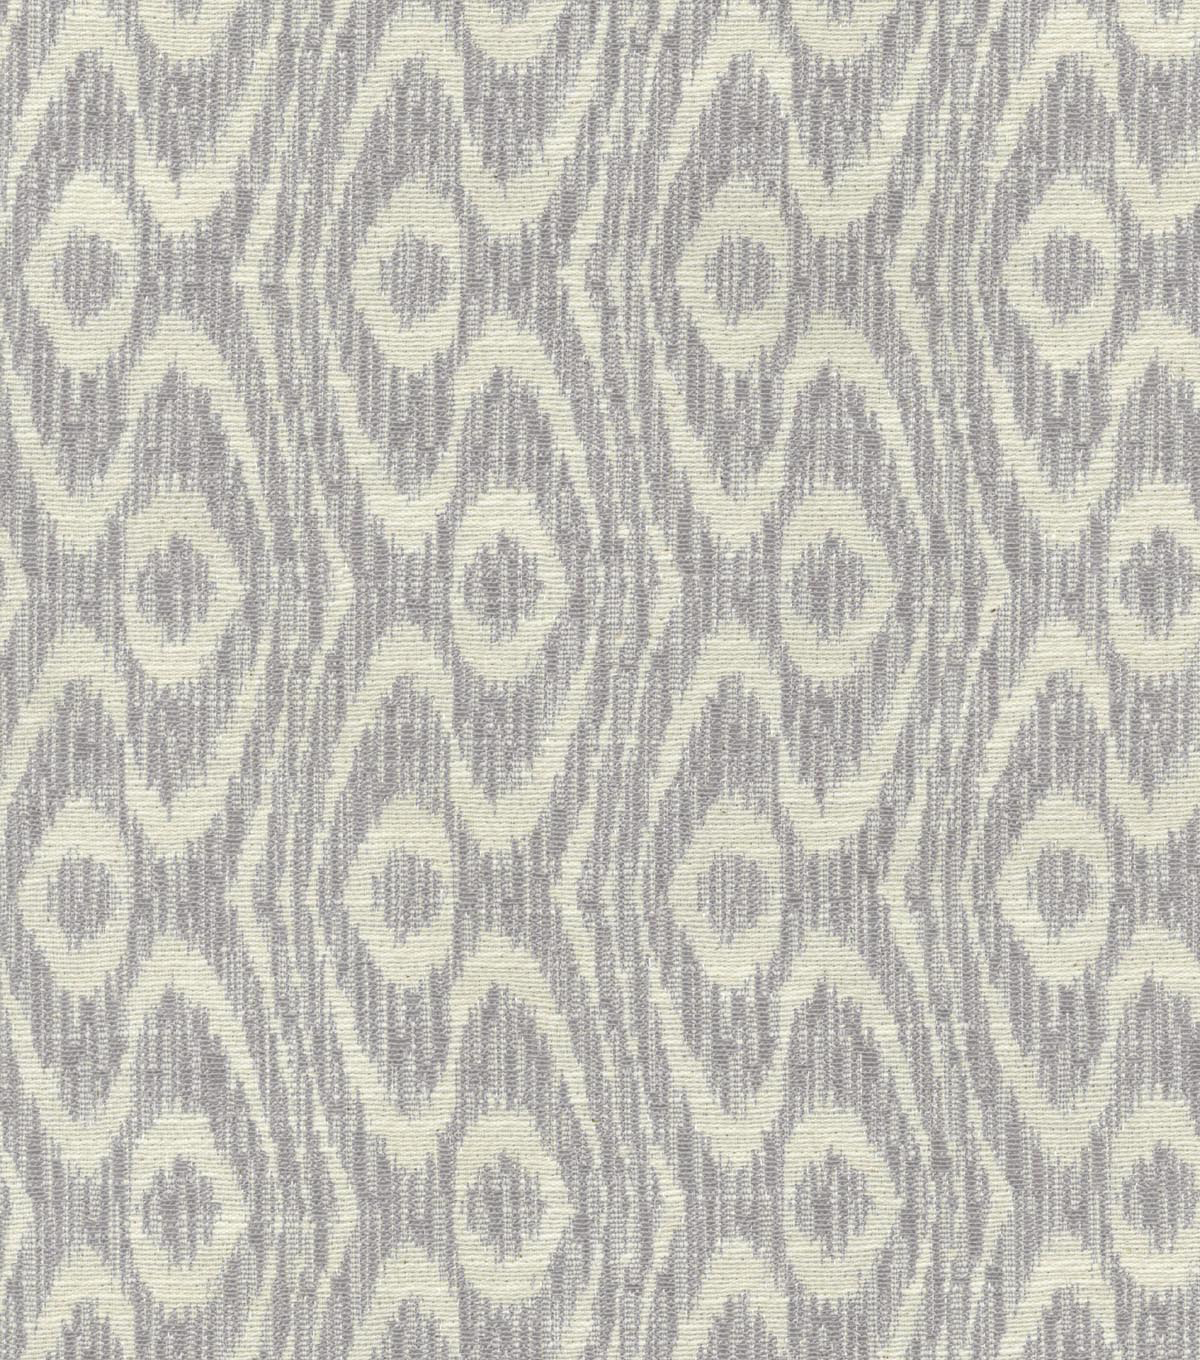 Home Decor 8\u0022x8\u0022 Swatch Fabric-Tracy Porter Acres Beyond Silver Cloud